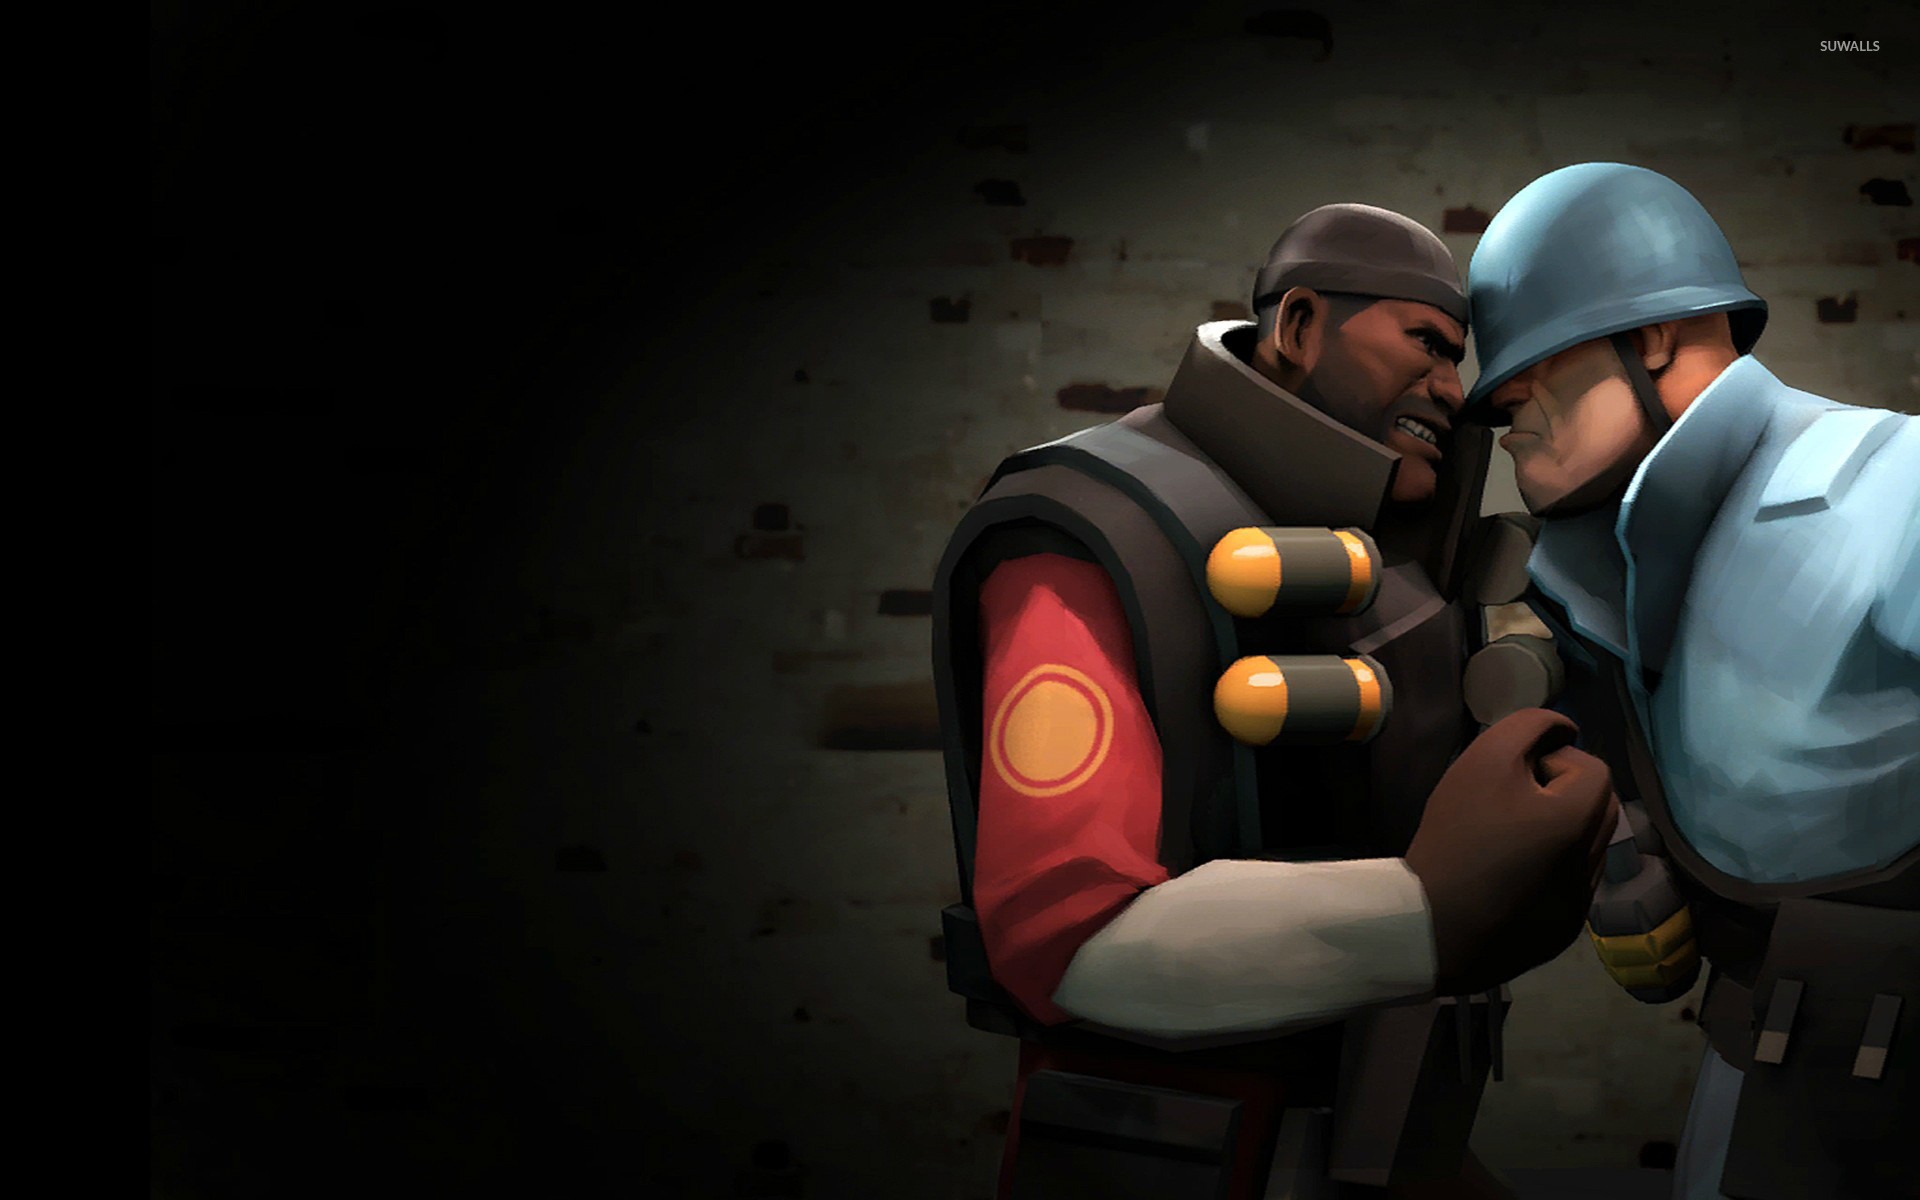 TF2 Demoman vs Soldier wallpaper   Game wallpapers   15105 1920x1200